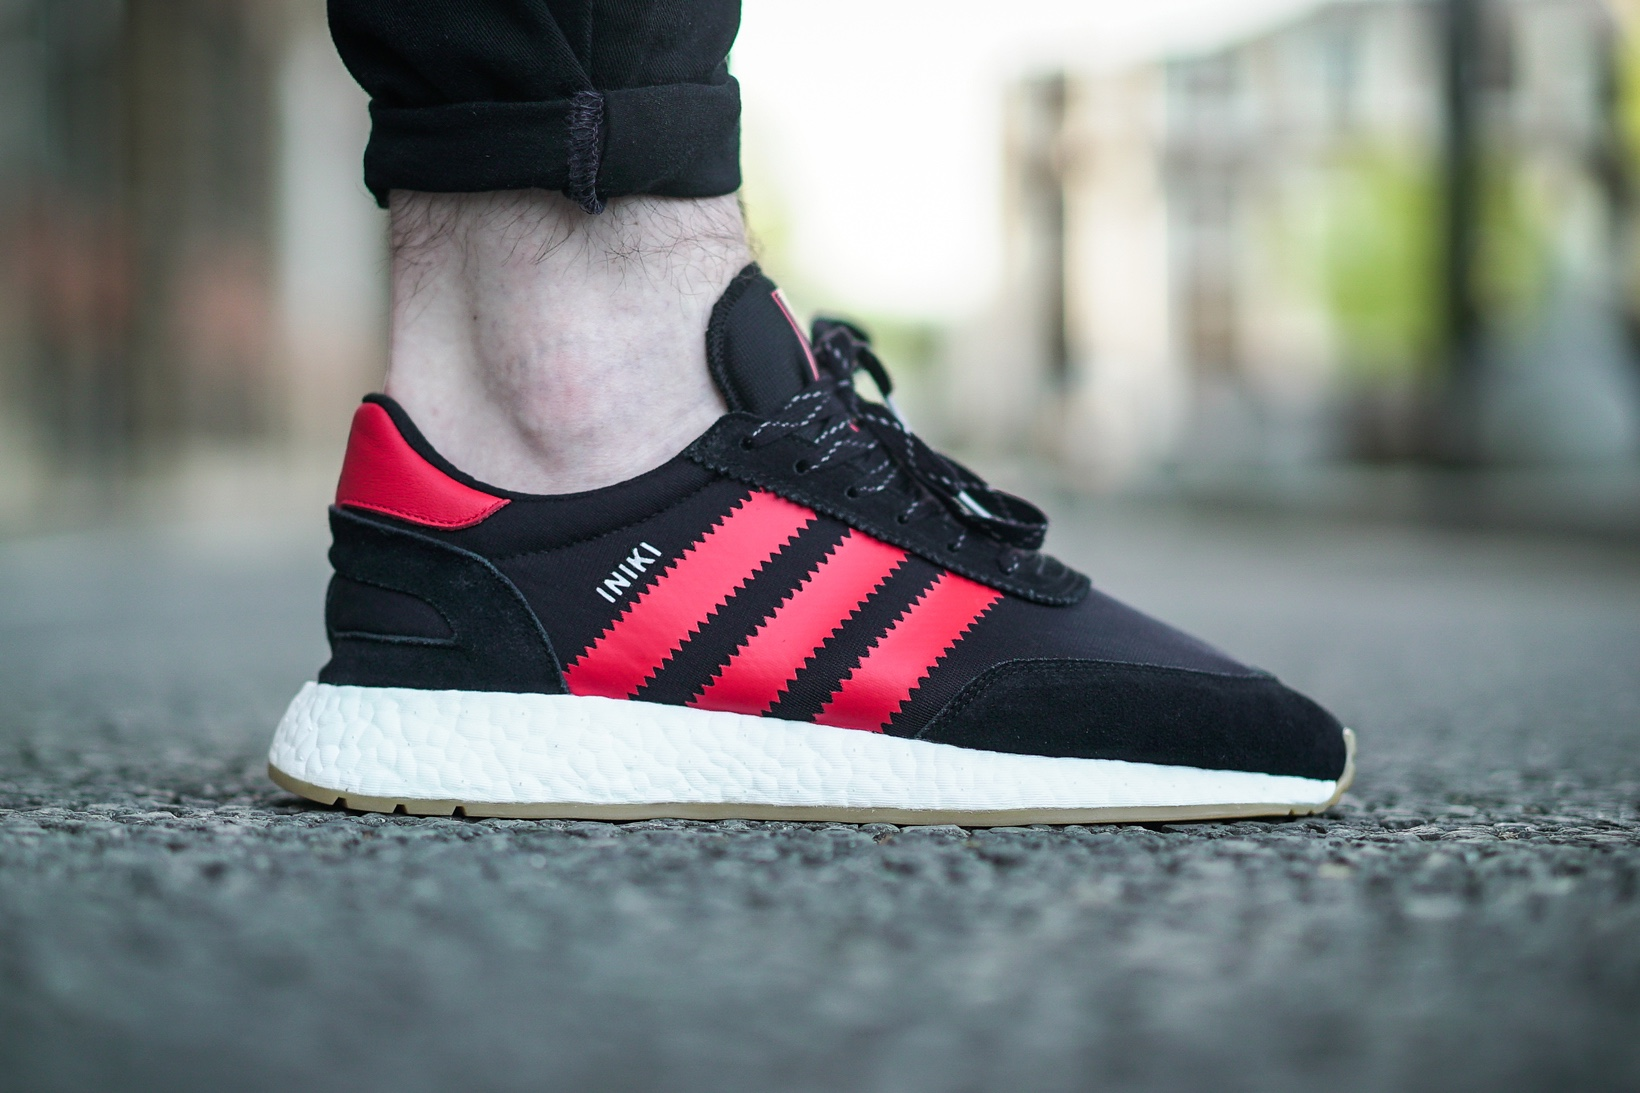 La Adidas Originals Iniki Runner BOOST obtient son premier coloris city